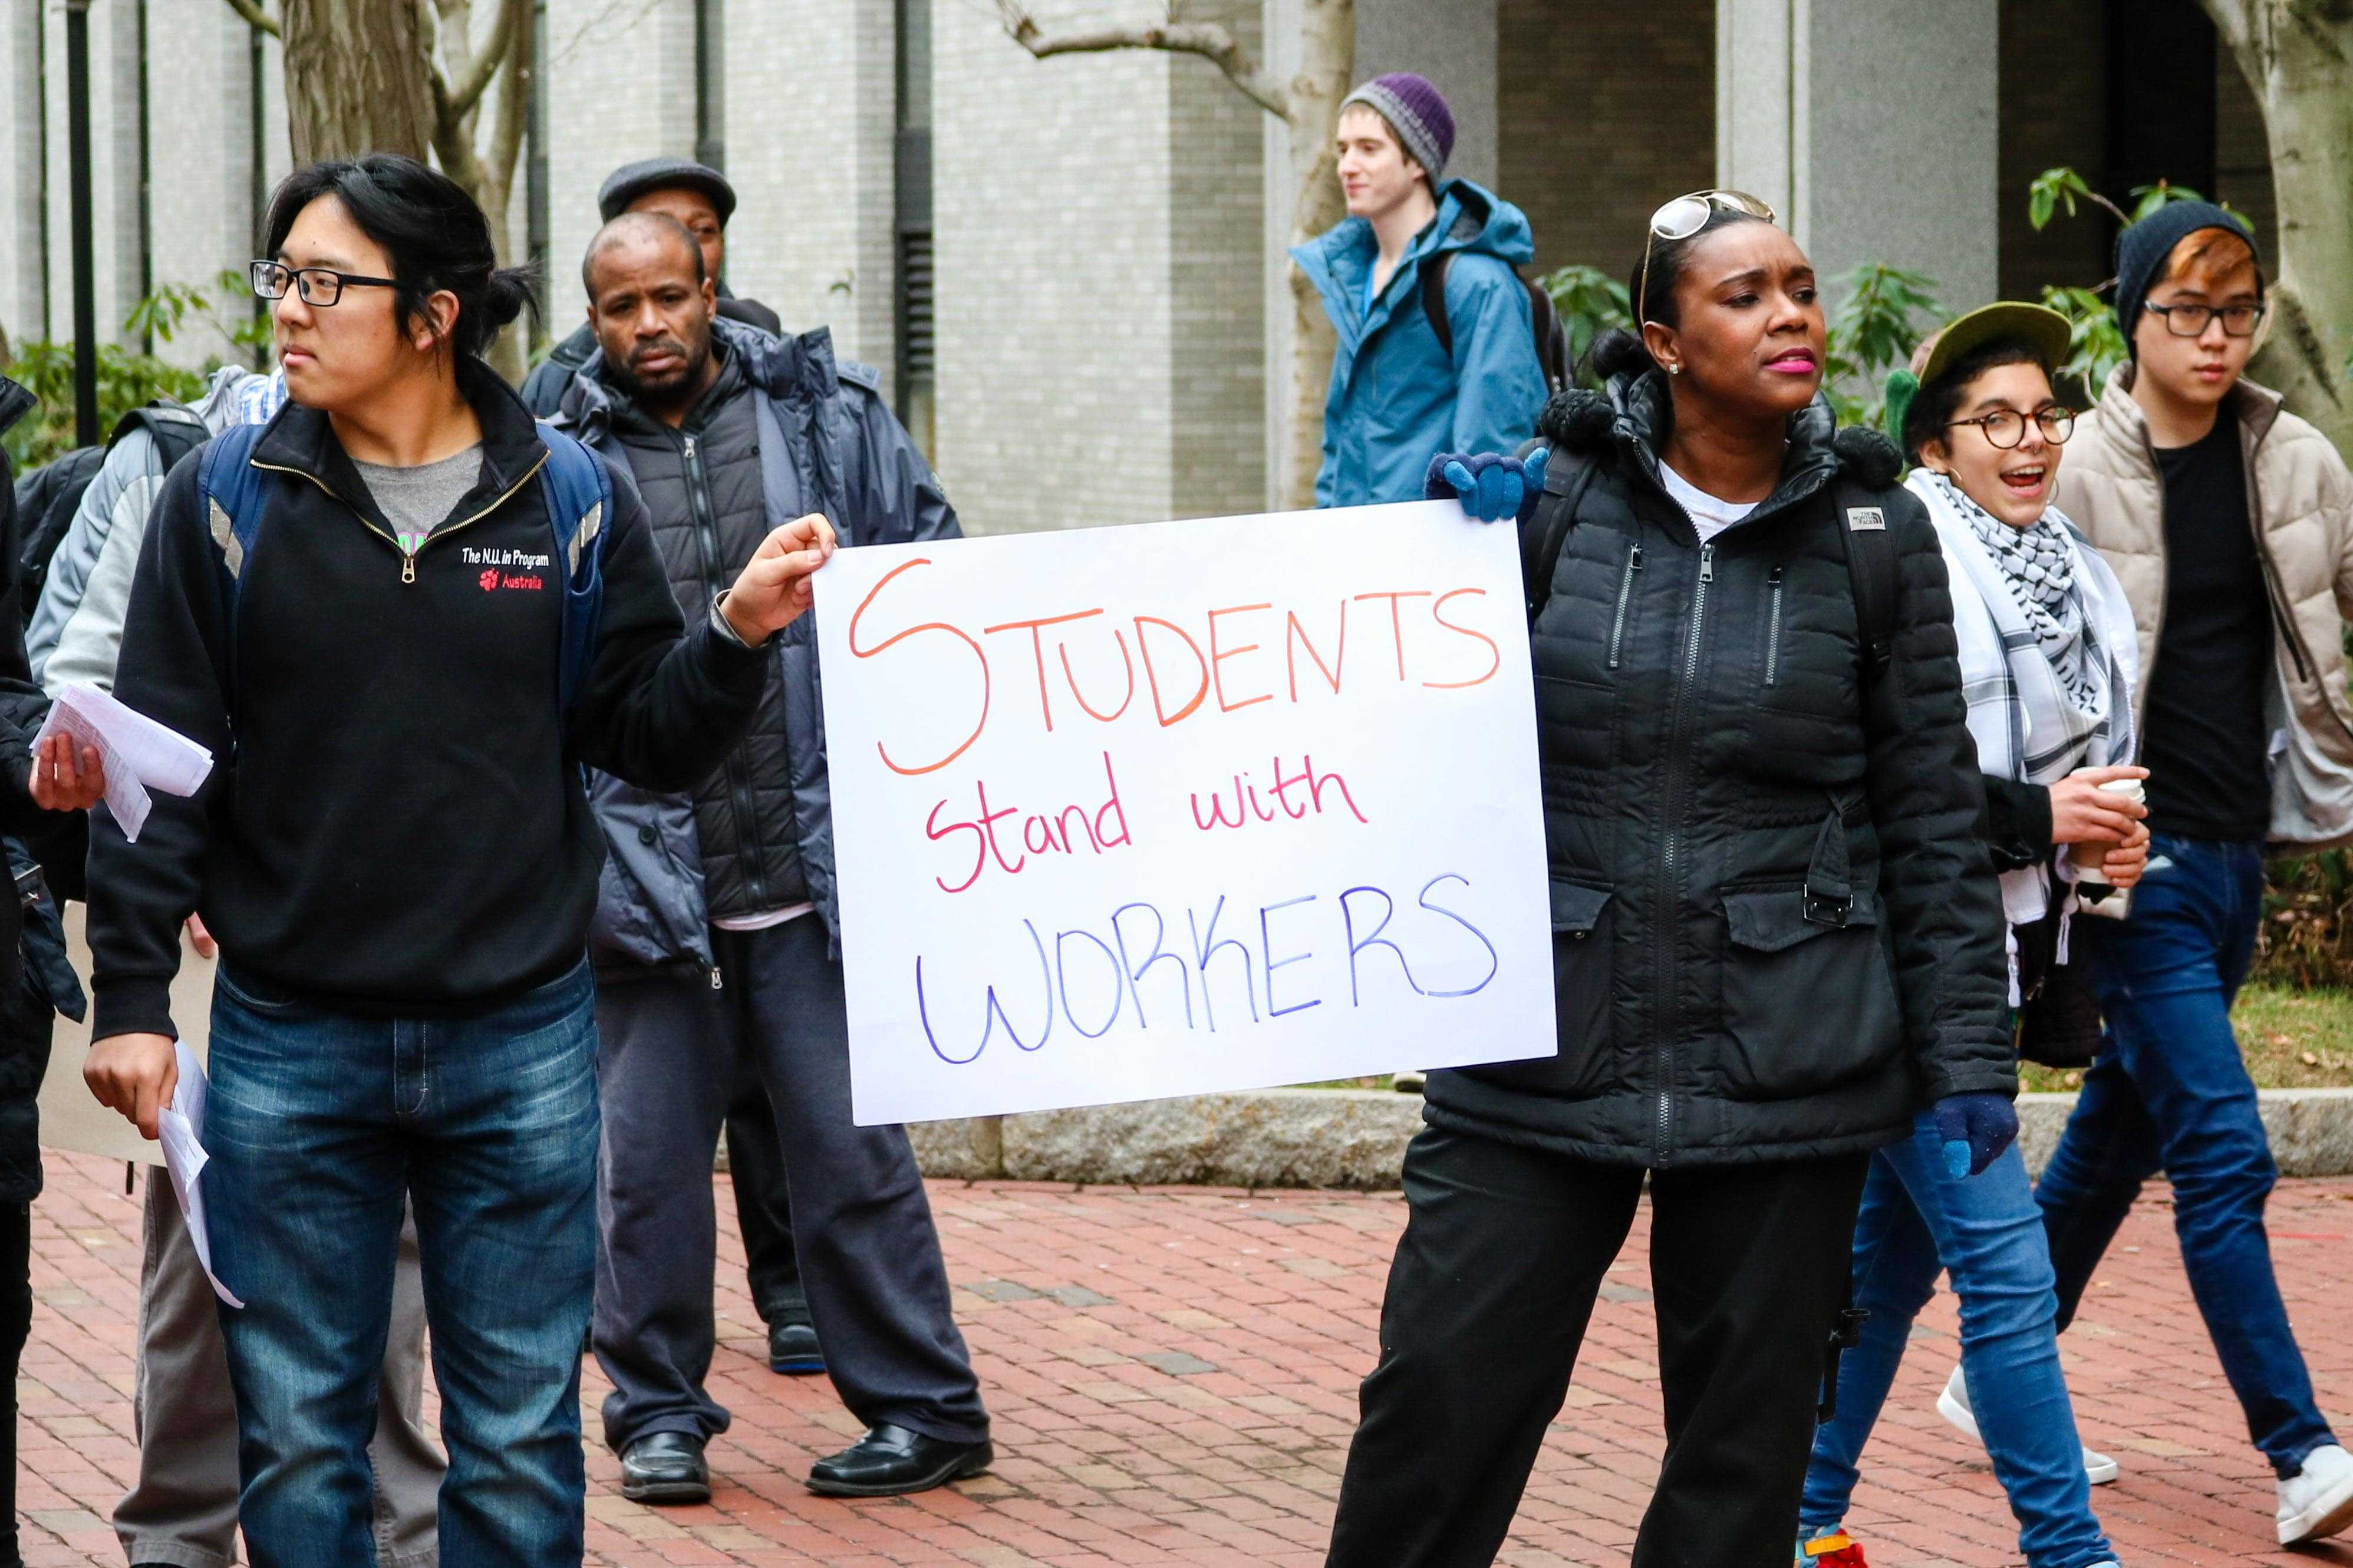 Students+stand+in+solidarity+with+workers+during+the+march+around+campus.